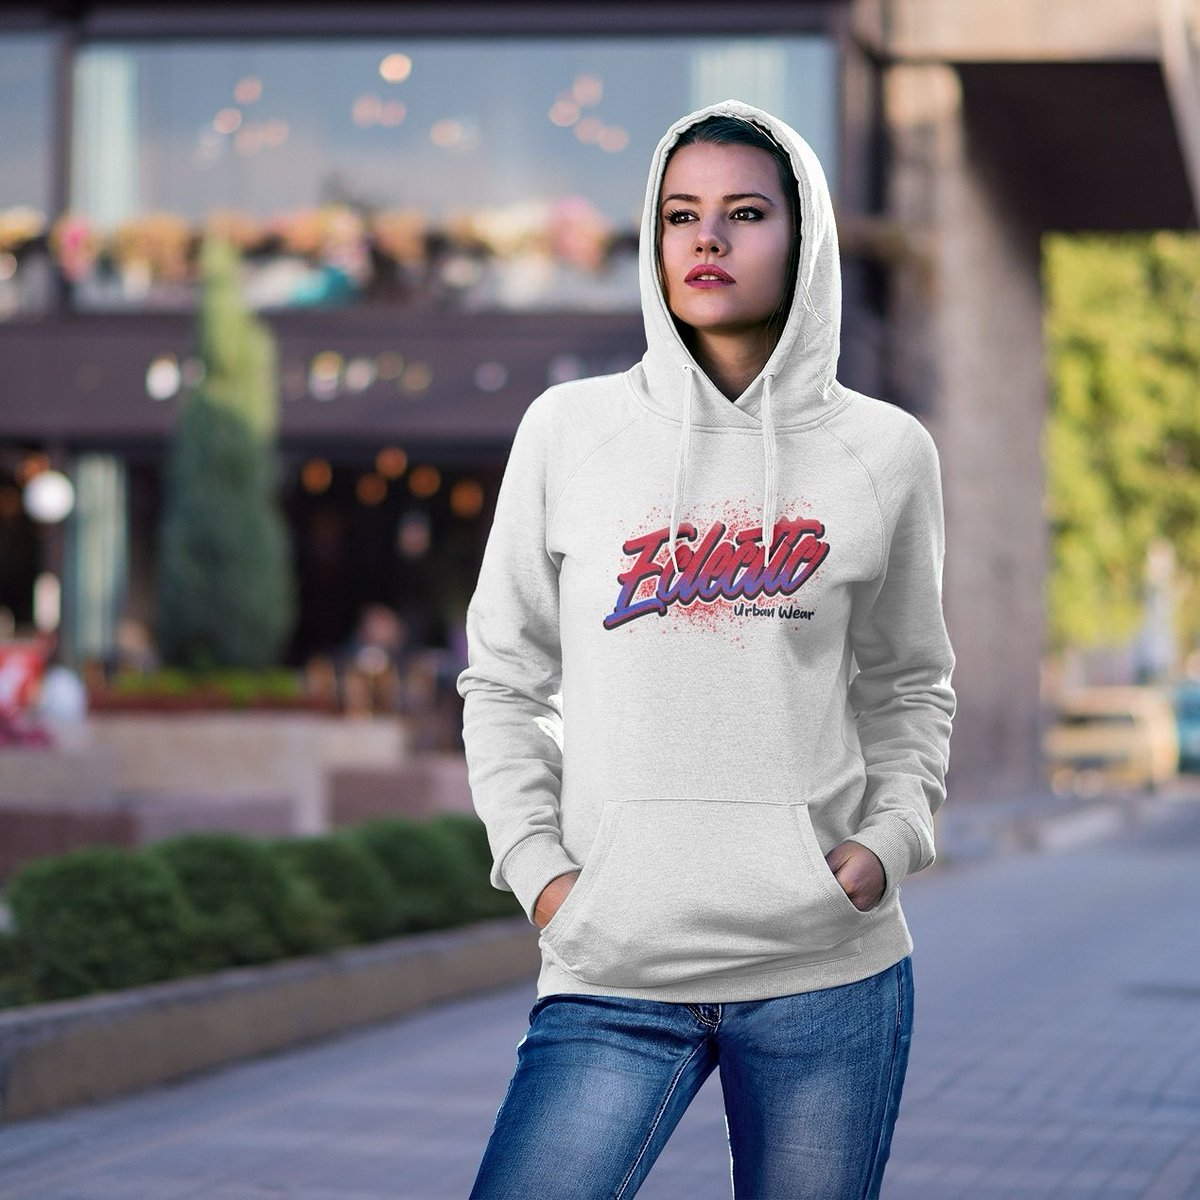 Eclectic Urban Wear was born out of the need not to worry about style and glamour. We want you to be comfortable with being comfortable. Shirt is available at https://teespring.com/stores/eclectic-urban-wear… #nyc #lookoftheday #feelgreat #feelgood #urbanwear #urbanbrand #comfort #aboutyou #beblessedpic.twitter.com/fkrB468K3j